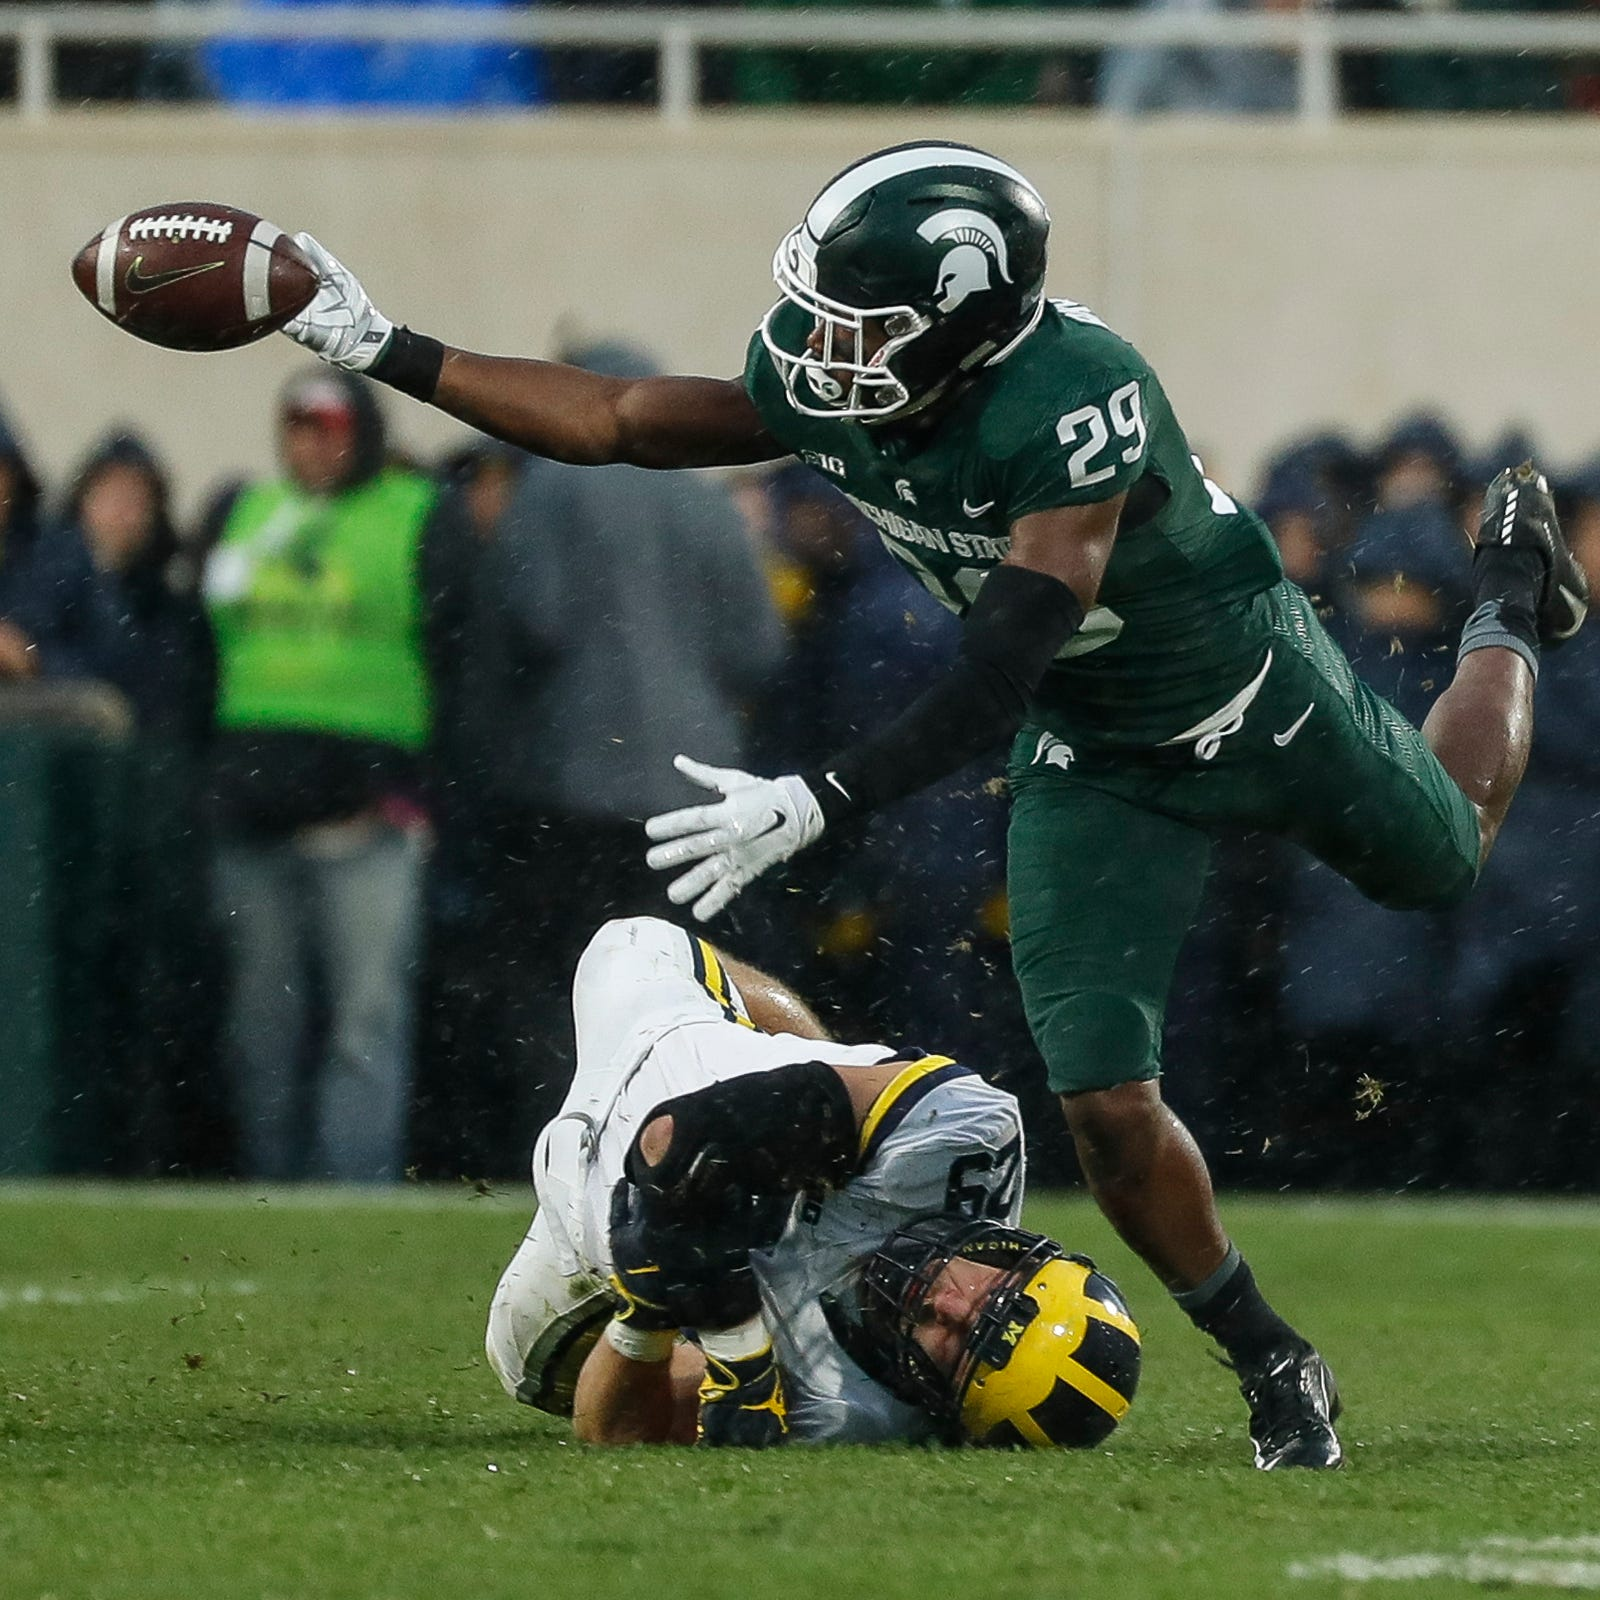 Where does Michigan State football go from here?